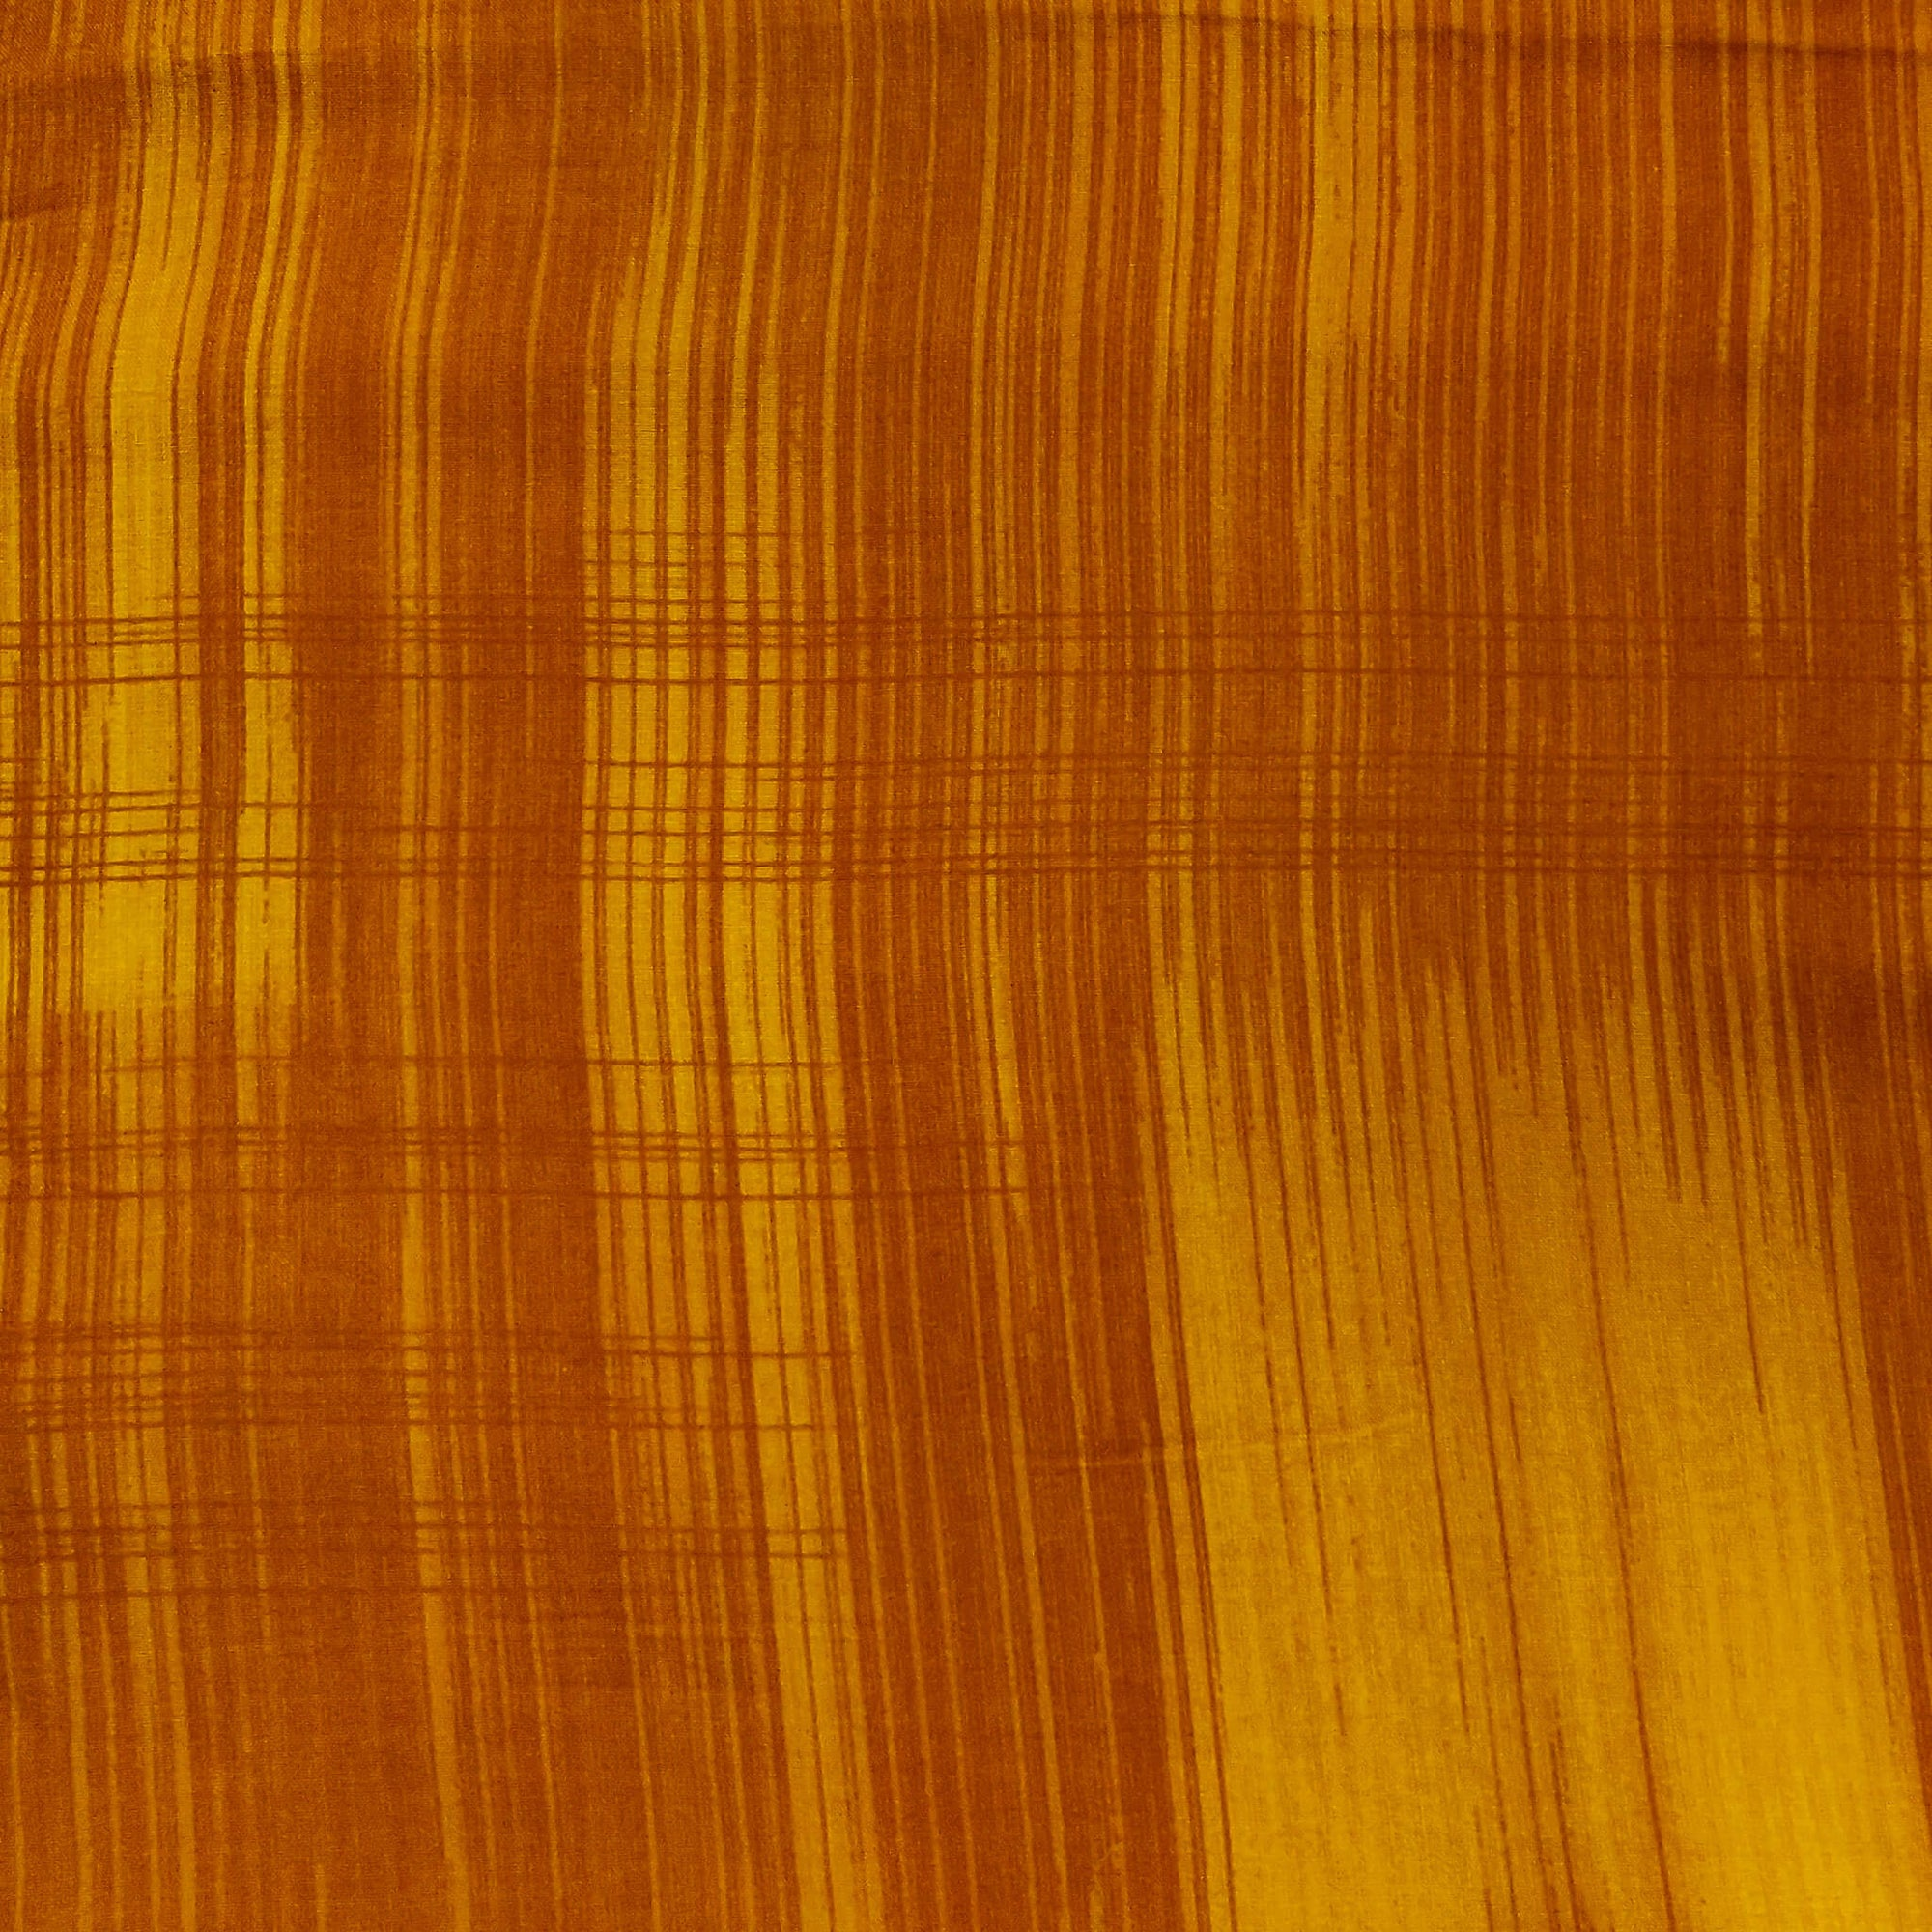 Mustard Rayon Fabric With Brown Textured Scren Print Fabric